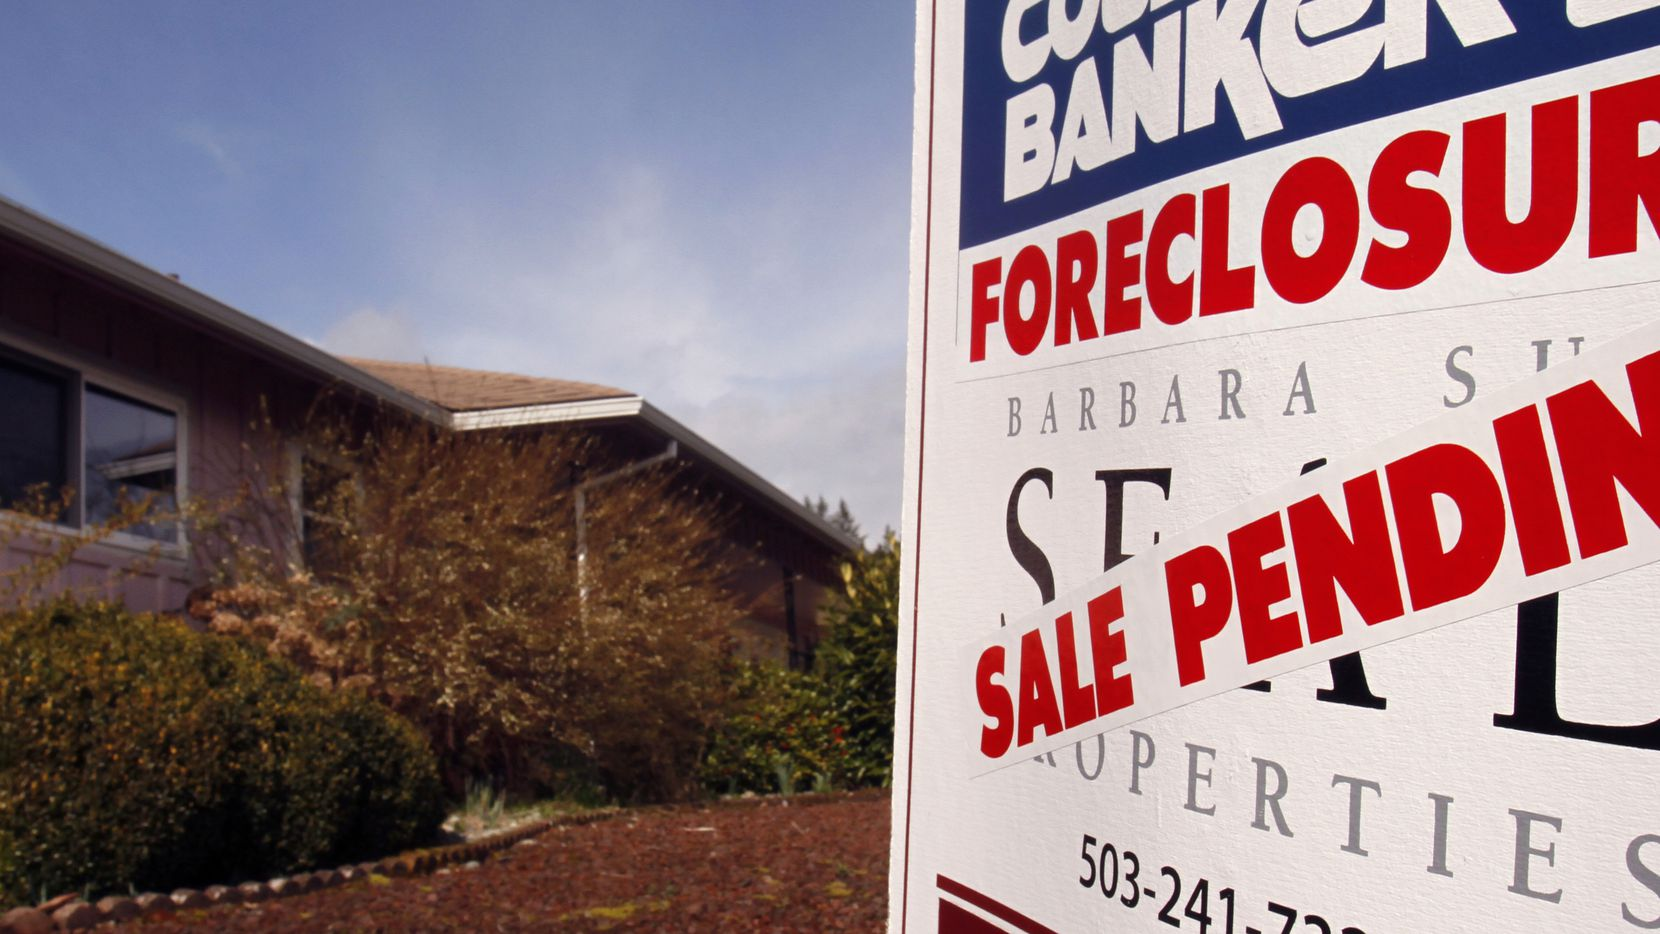 Federal programs have kept home foreclosures low since the start of the COVID-19 pandemic.